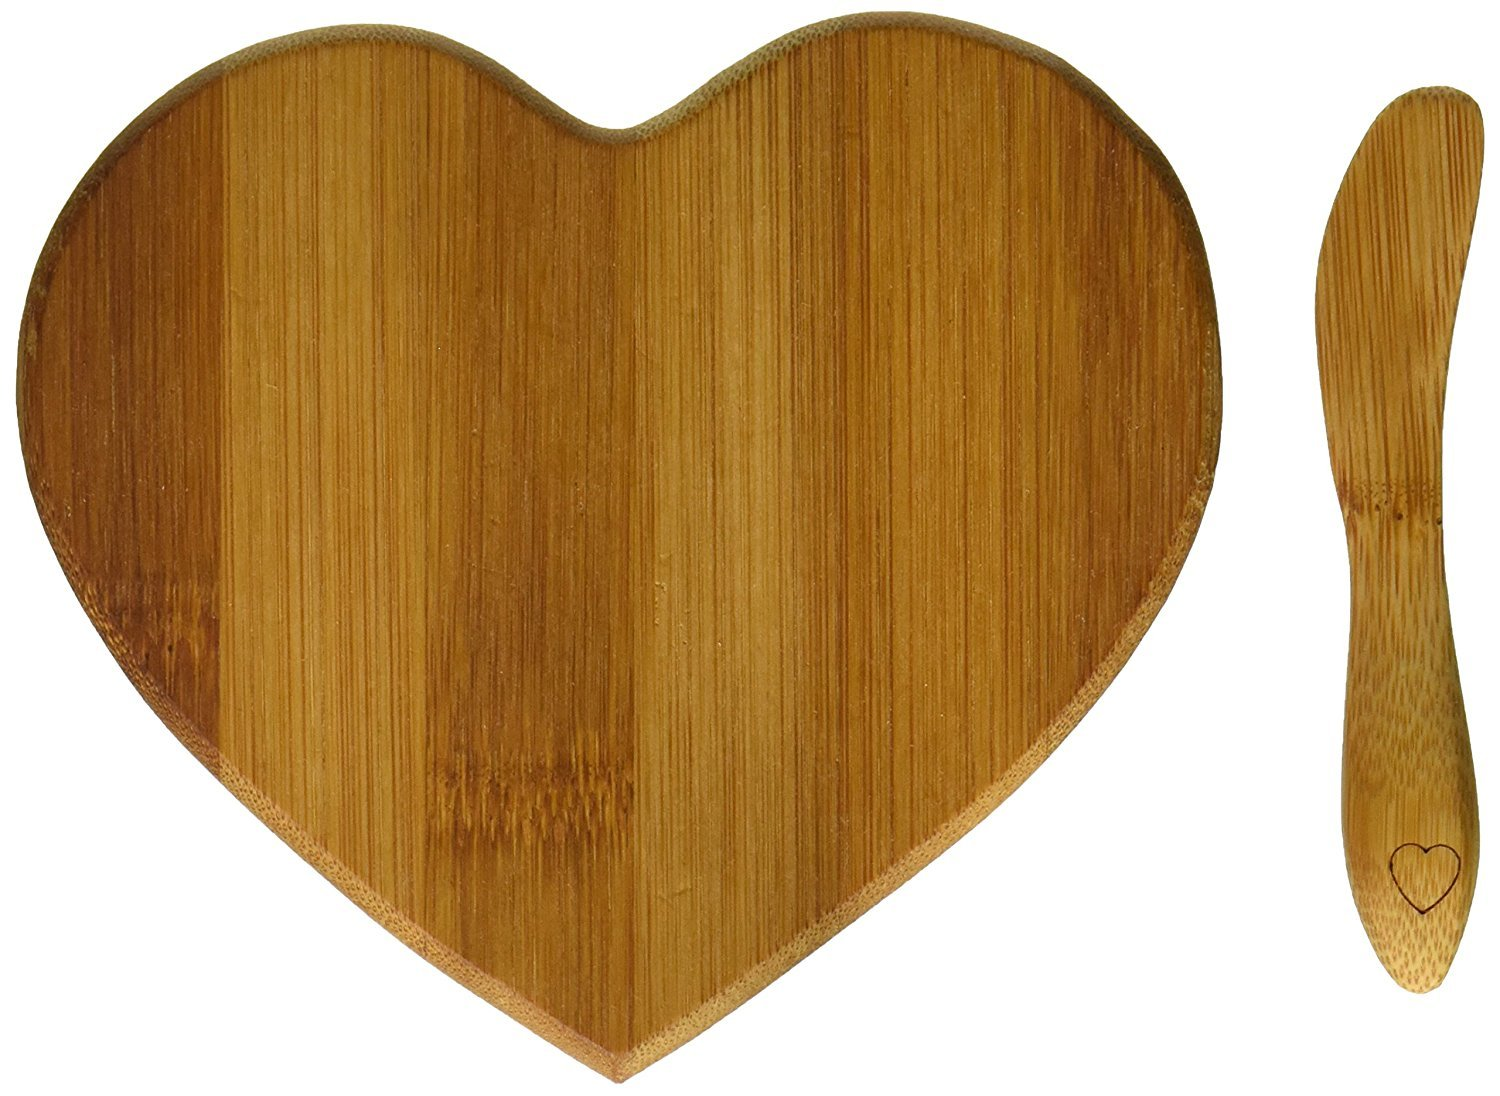 Tastefully Yours' Heart-Shaped Bamboo Cheese Board - Total 48 sets